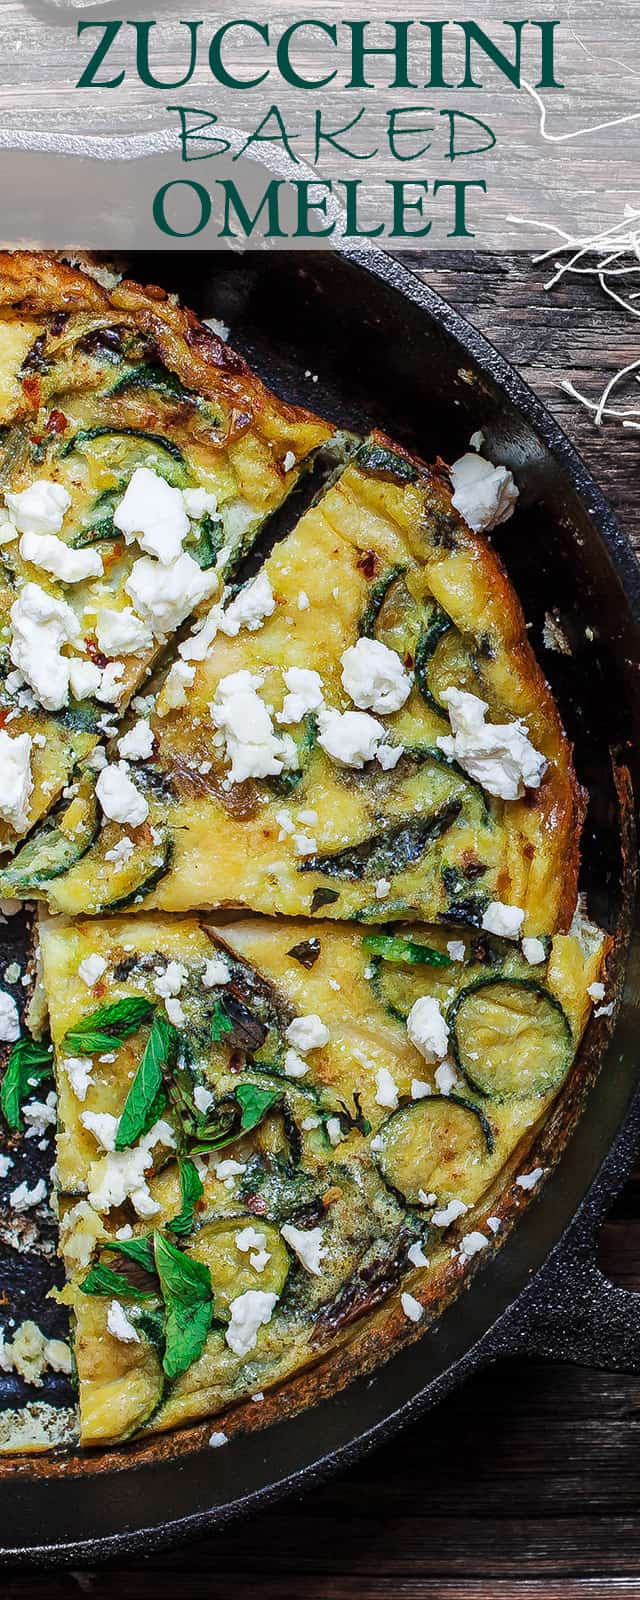 Middle Eastern Zuchini Baked Omelet Recipe   The Mediterranean Dish. A dense, flavor packed version of fritatta recipe. With zucchini, onions, fresh mint and olive oil. The perfect breakfast or brunch. See the step-by-step at The Mediterranean Dish!